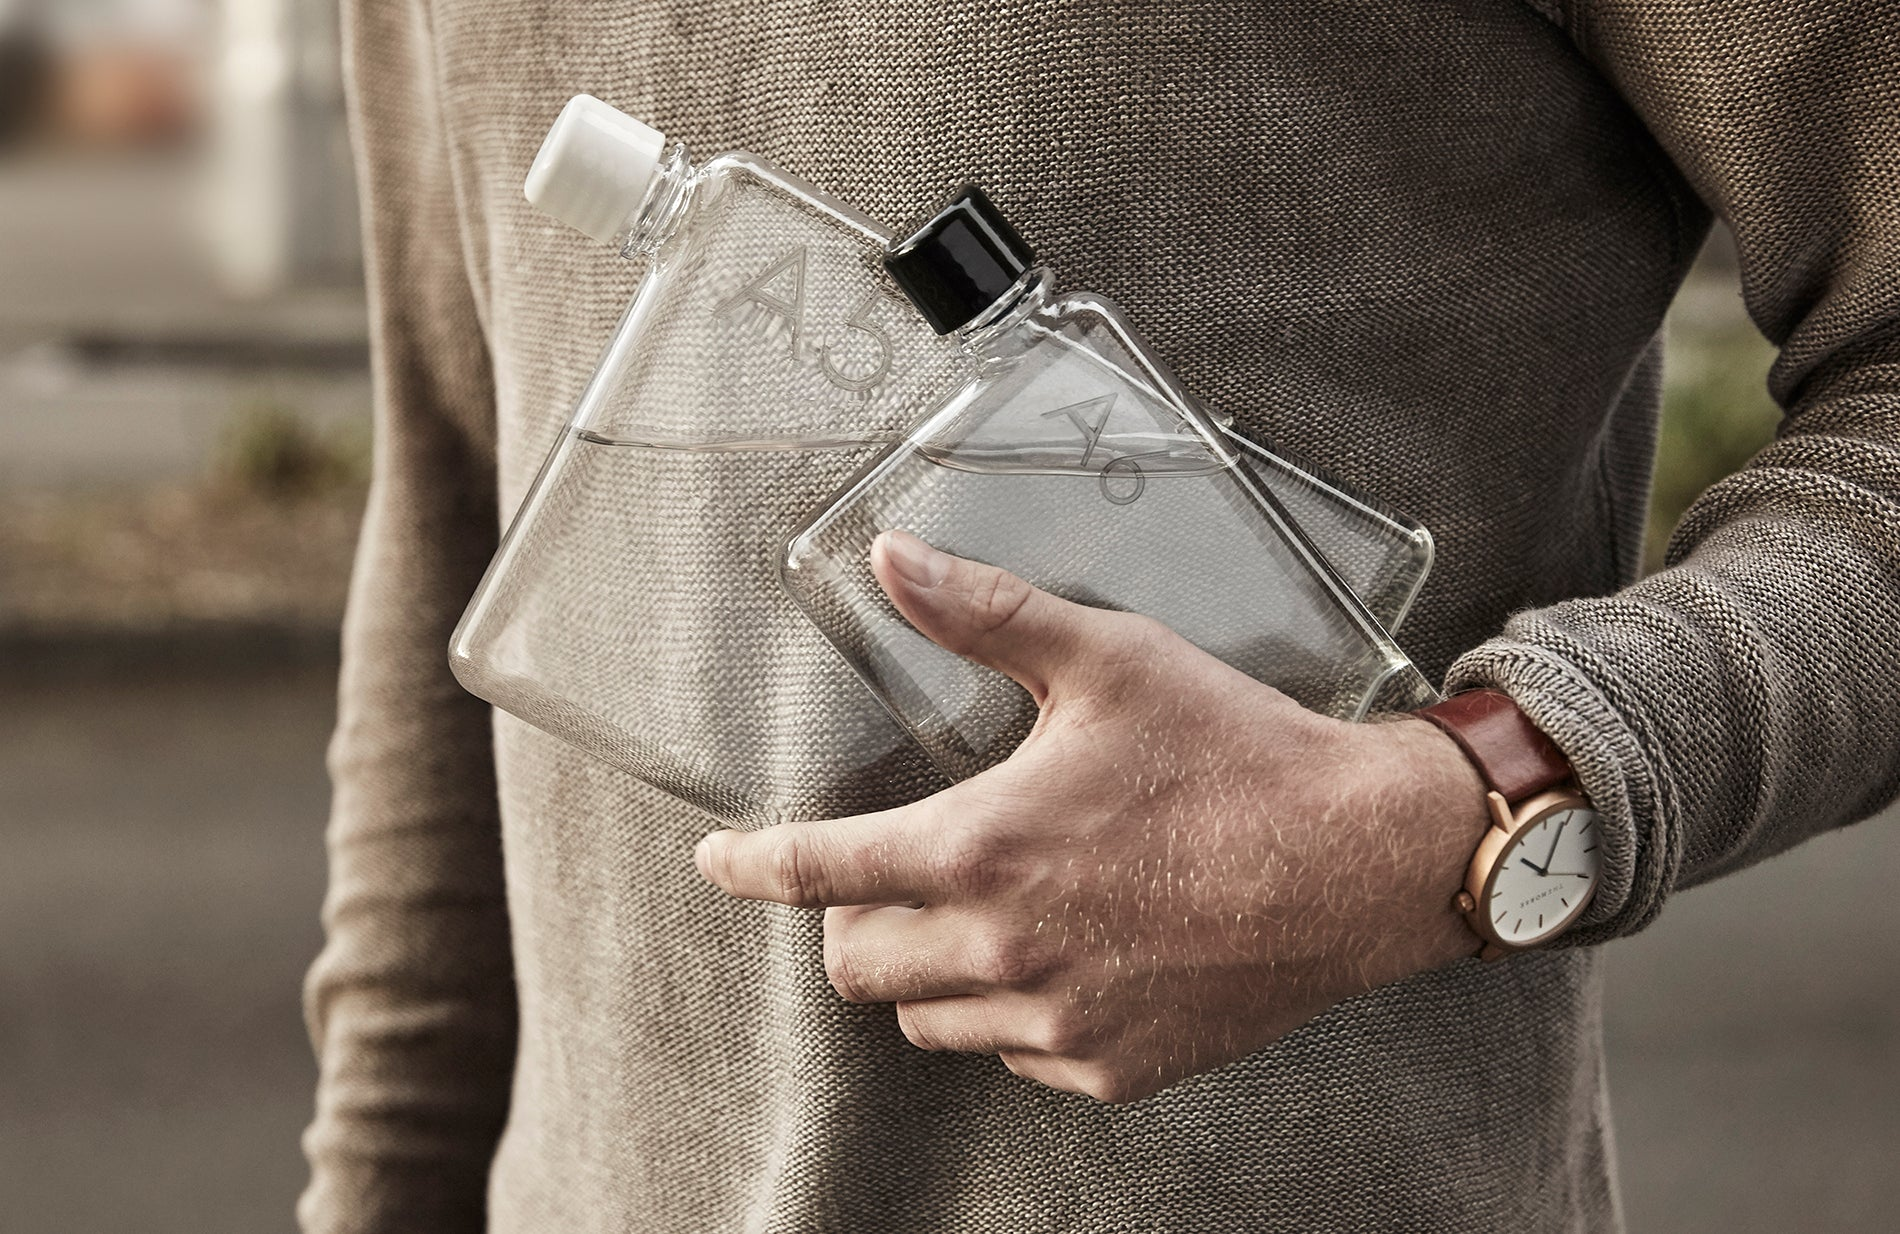 memobottle� | Featured in the 2016 Oscars® gift bags | The memobottle� is a premium, slim and reusable water bottle designed around the international paper sizes (A5 and A6.) The memobottles� neatly slide into carry bags alongside computers, tablet devices, books and valuables. The A6 memobottle� is the smallest of the collection and is designed to fit in your pocket, handbag or to be held while jogging. Available at www.memobottle.com